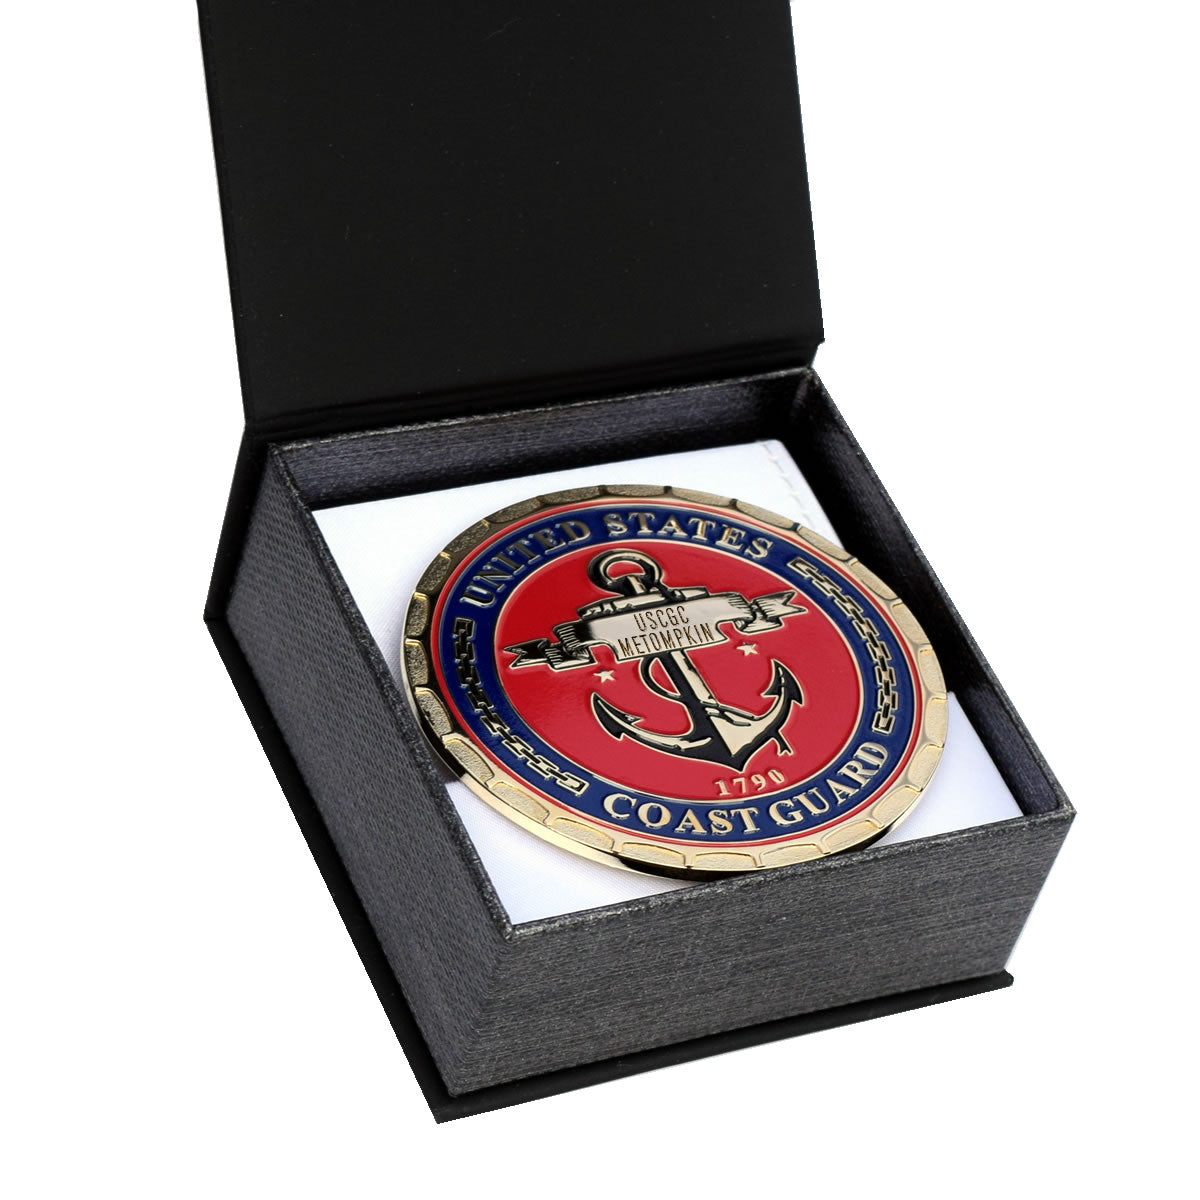 USCGC METOMPKIN WPB-1325 COAST GUARD PLAQUE